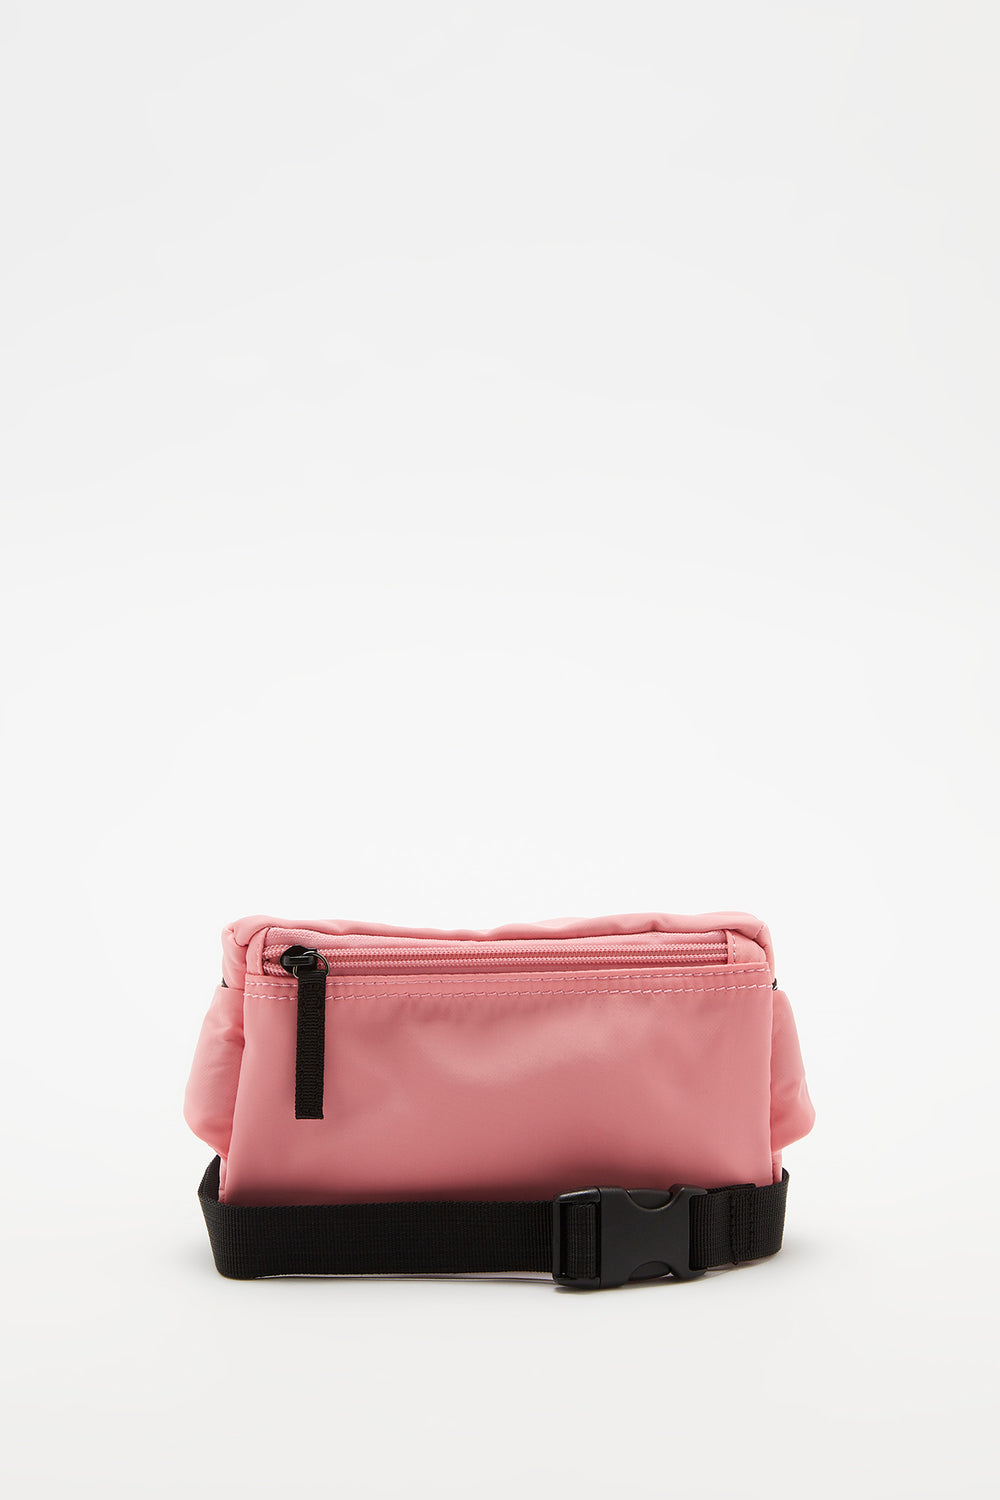 Zoo York Fanny Pack Peach